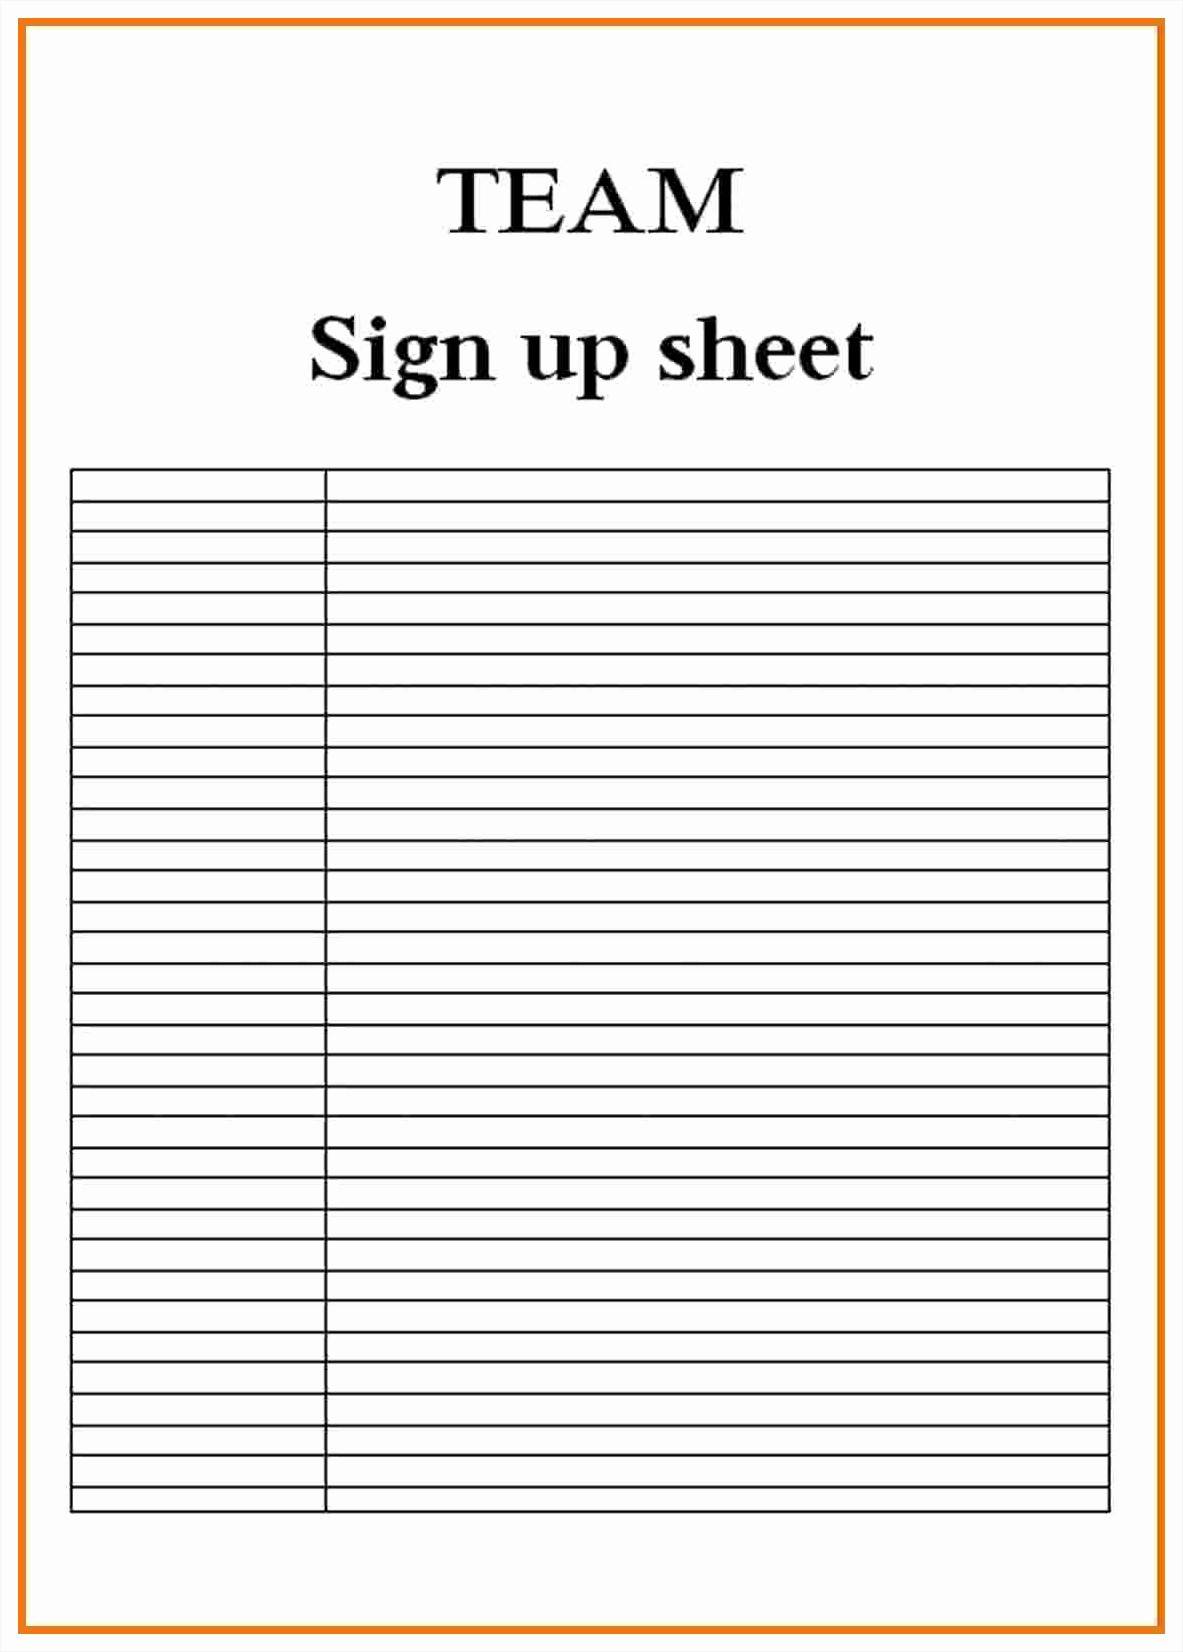 Blank Sign In Sheet Template Best Of Blank Sign Up Sheet Example Mughals